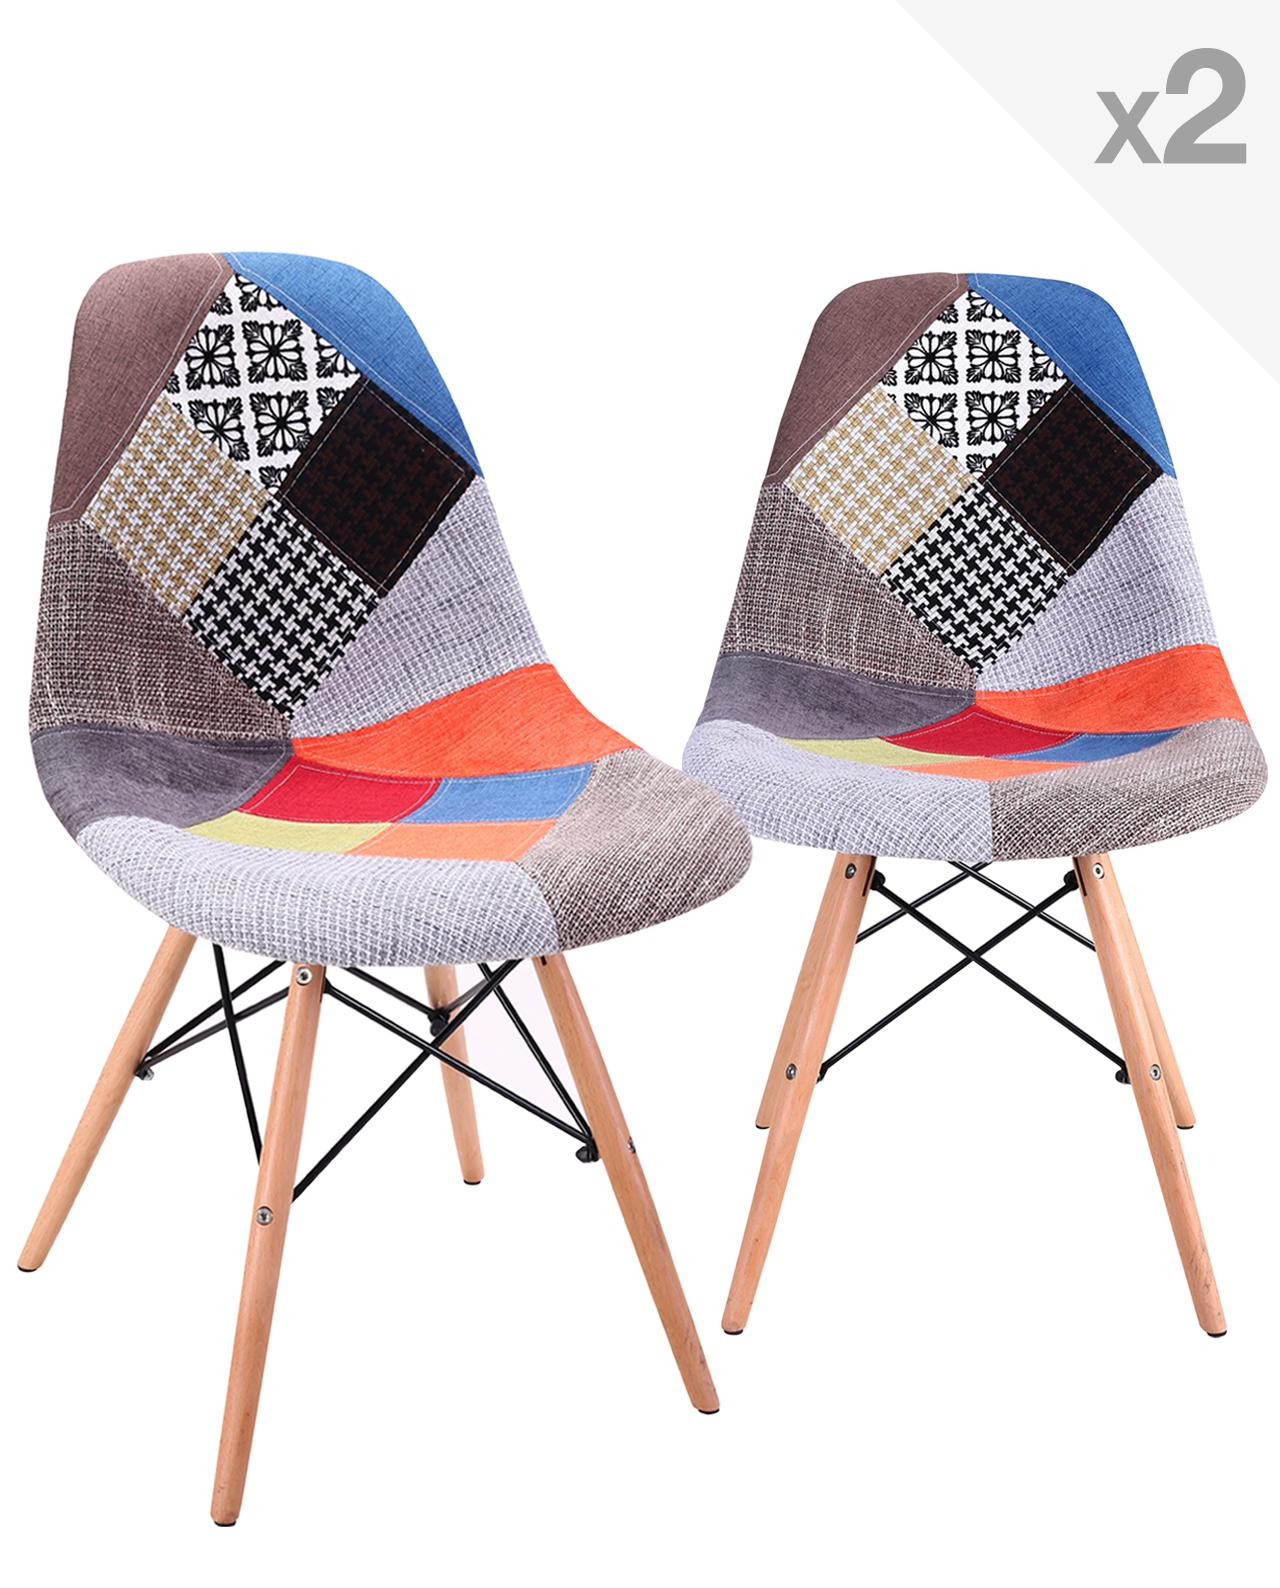 Chaises Scandinave Patchwork Nadir Lot De 2 Chaises Dsw Design Scandinave Patchwork